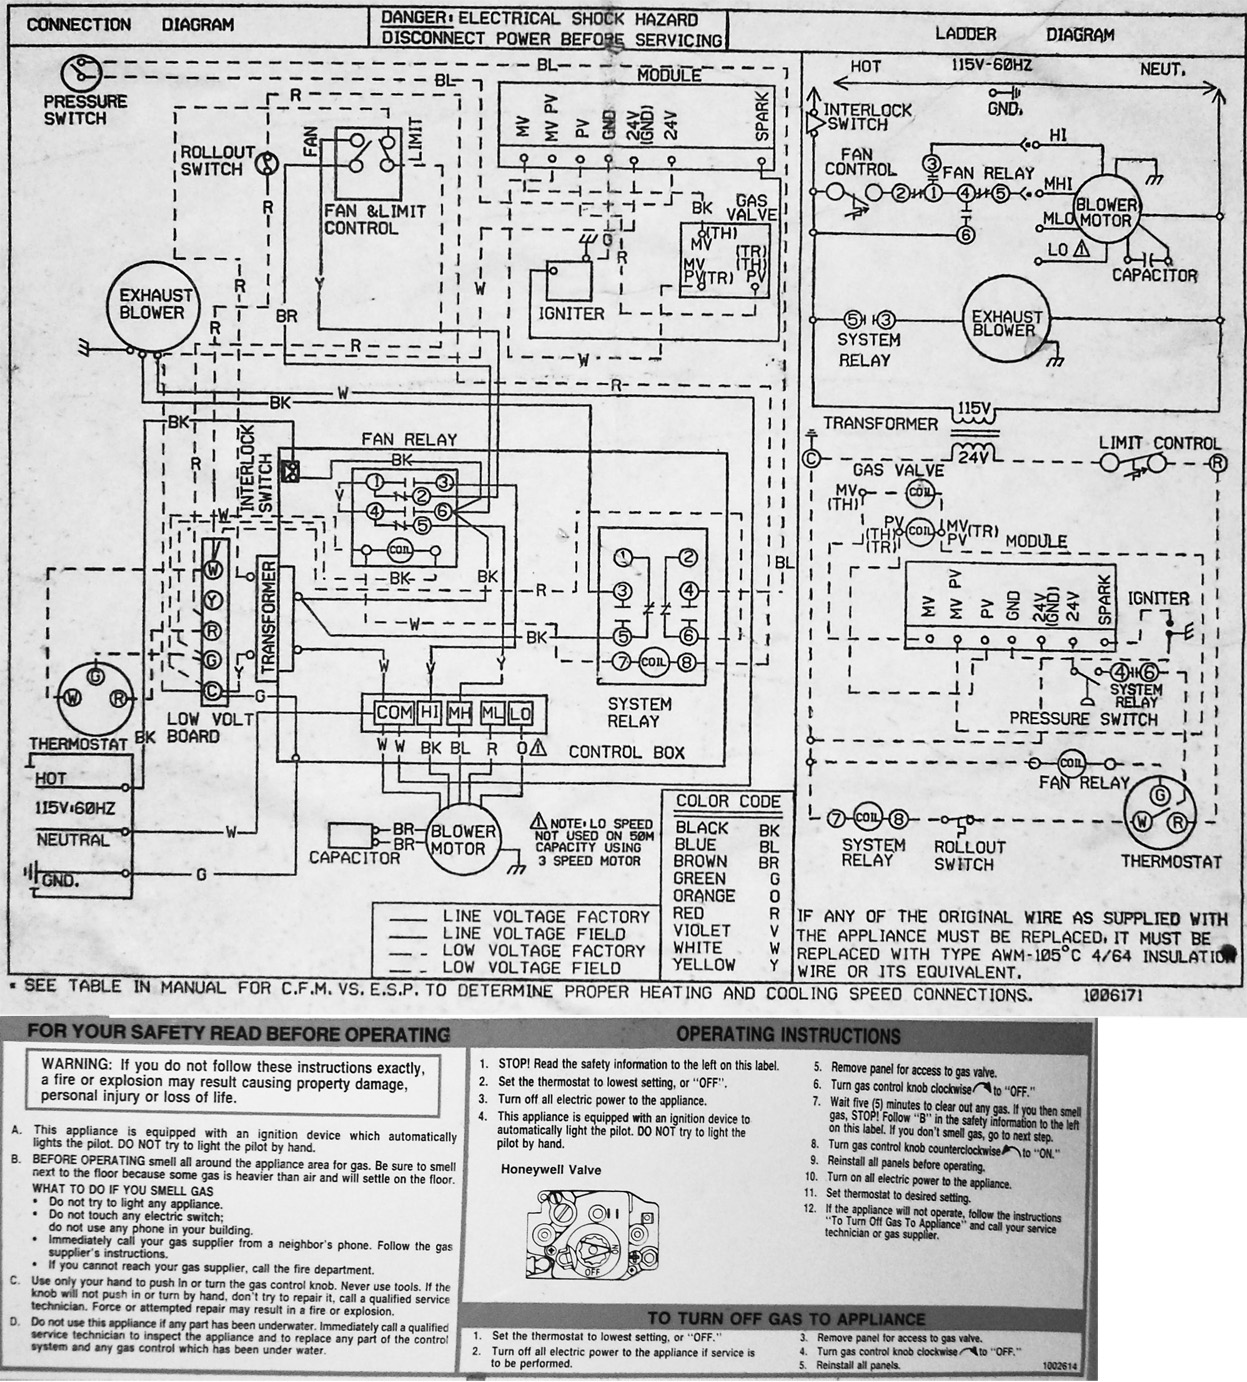 tstar furnace won't turn on at all furnace was very dirty not used omron ly2 wiring diagram at bakdesigns.co